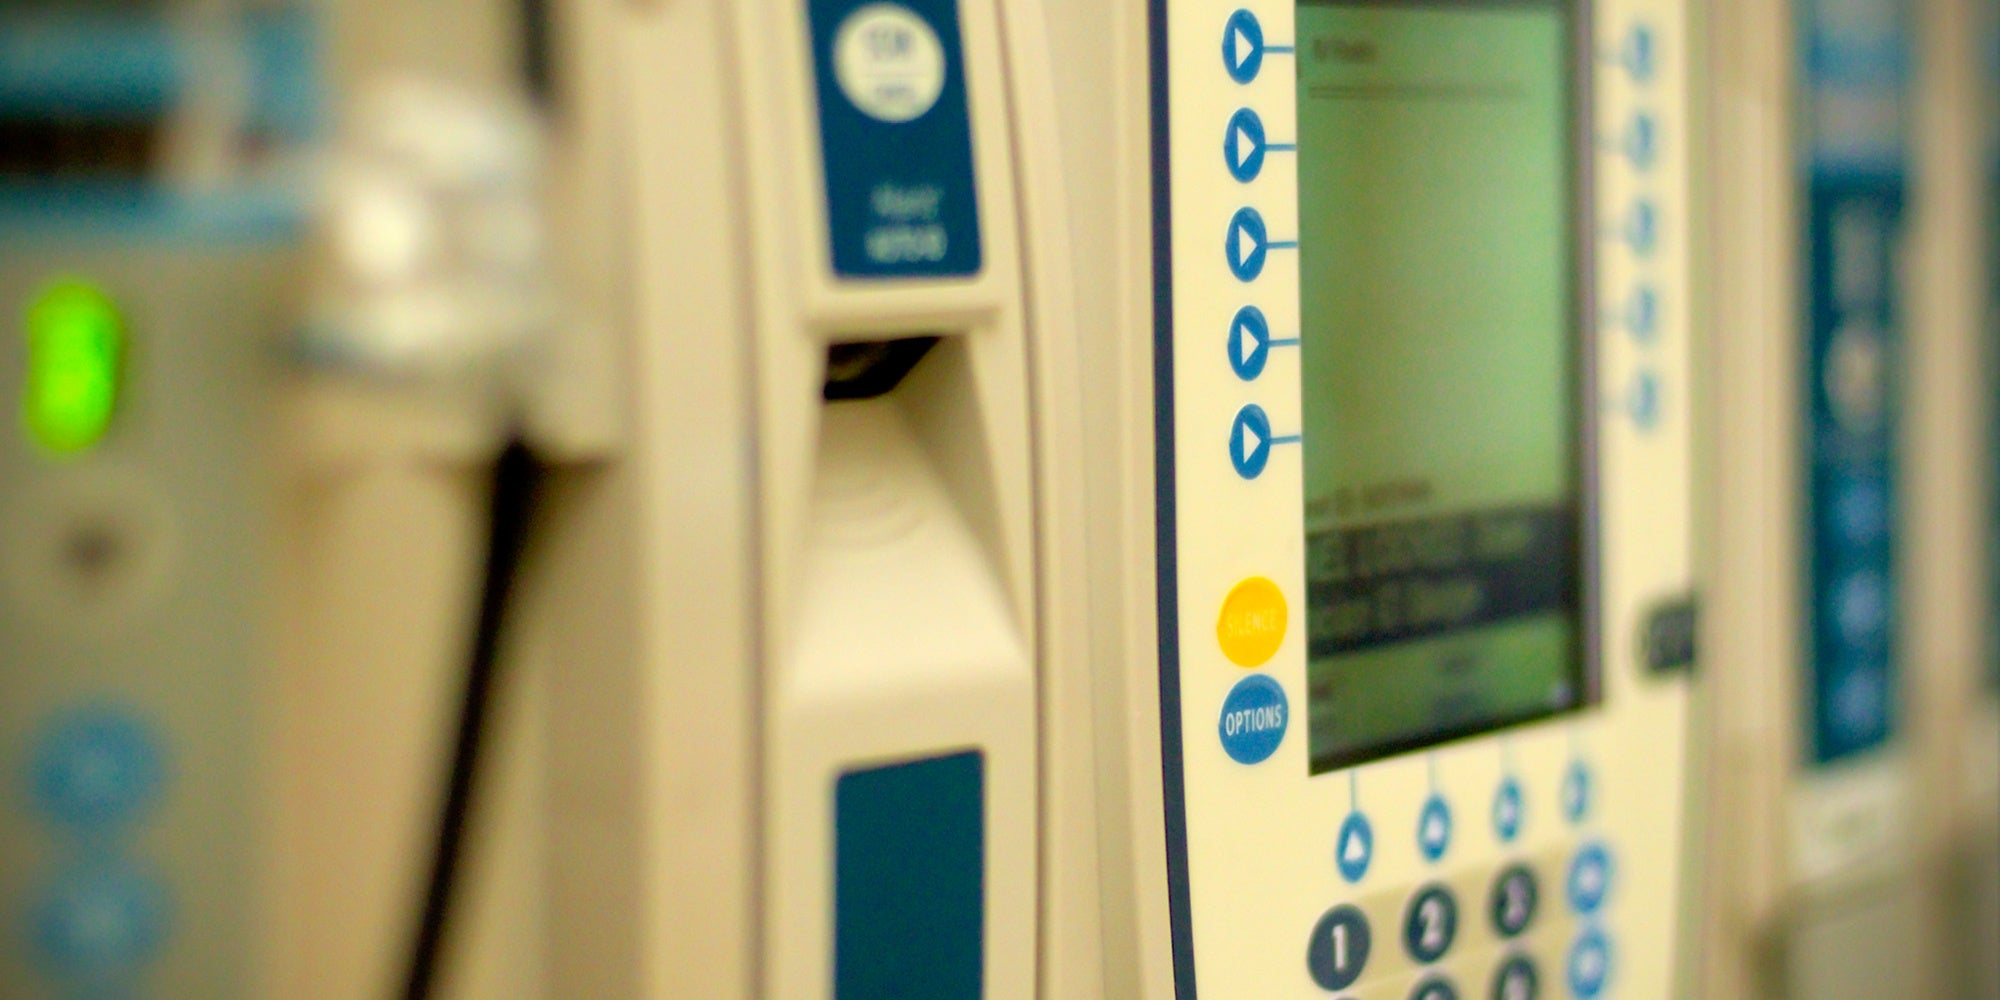 Thousands Of Medical Devices Are Open To Hacking Over The Internet